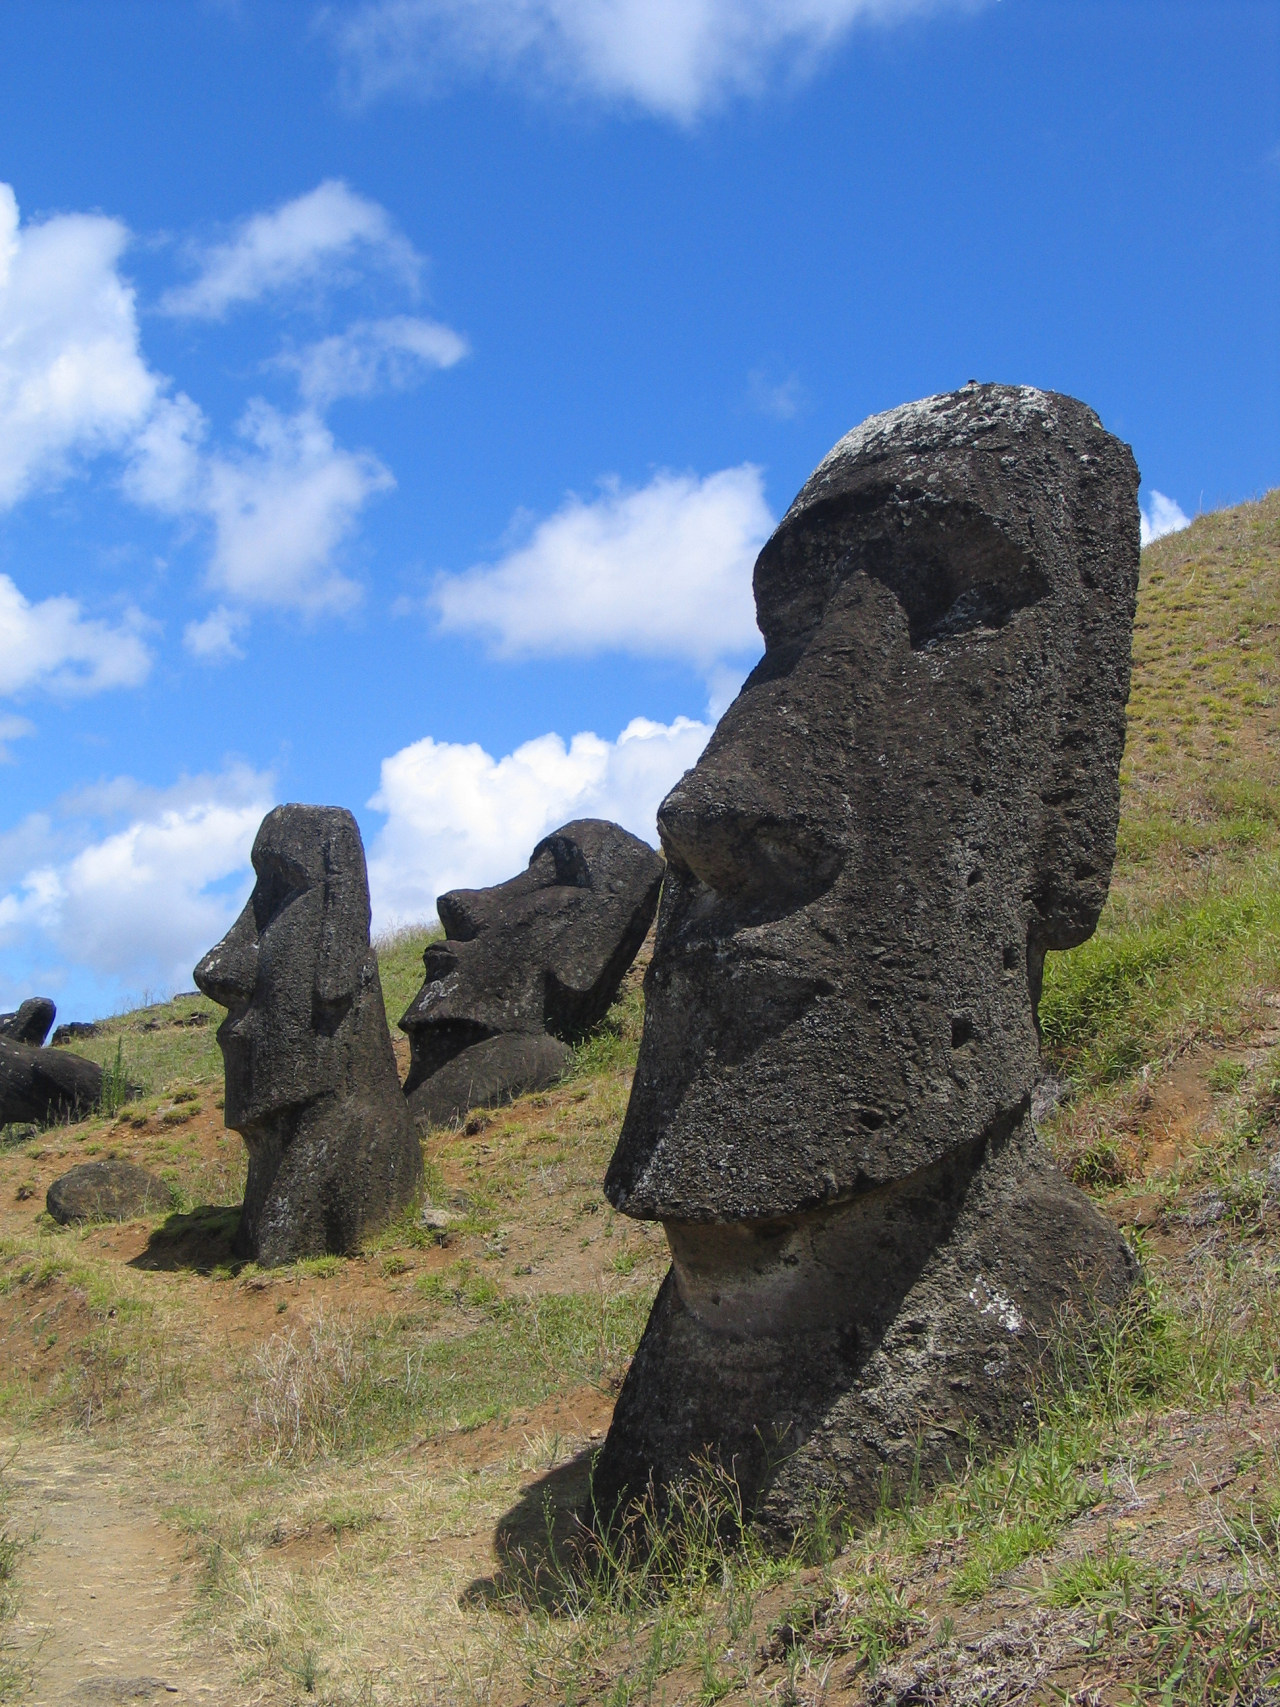 Moai at Rano Raraku, Easter Island. Photo courtesy Aurbina